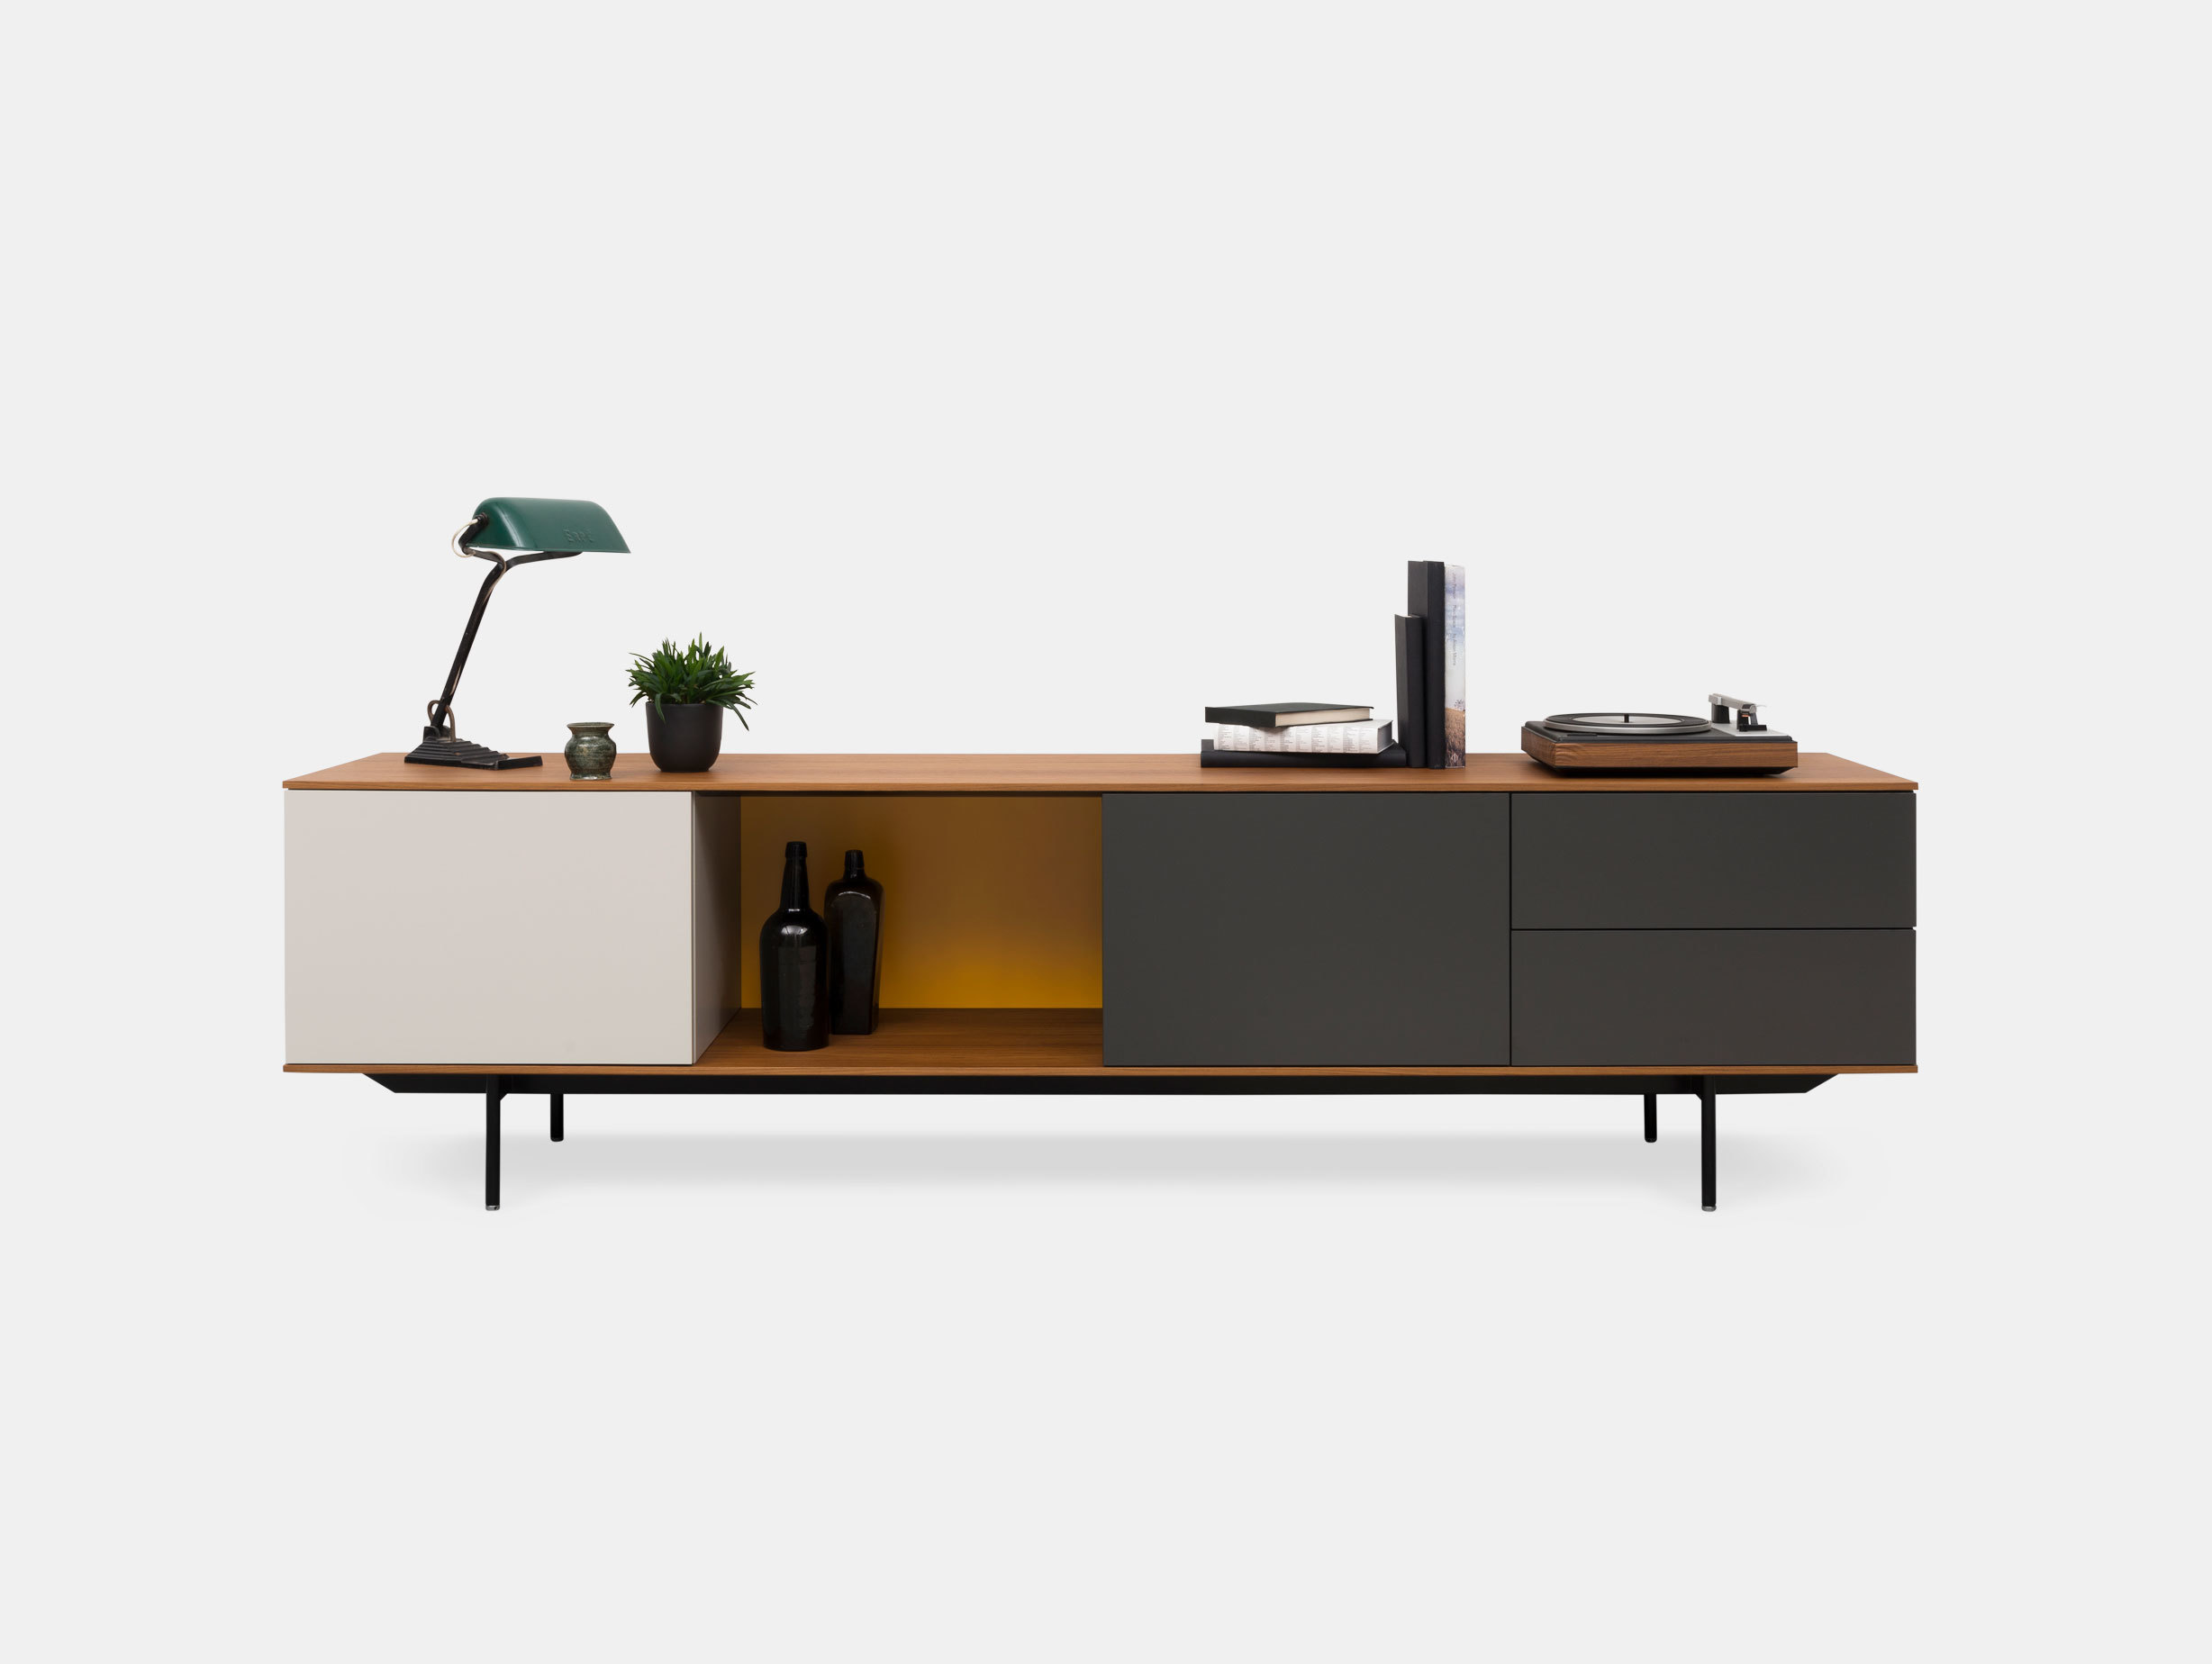 Landscape Sideboard - Style Two image 1